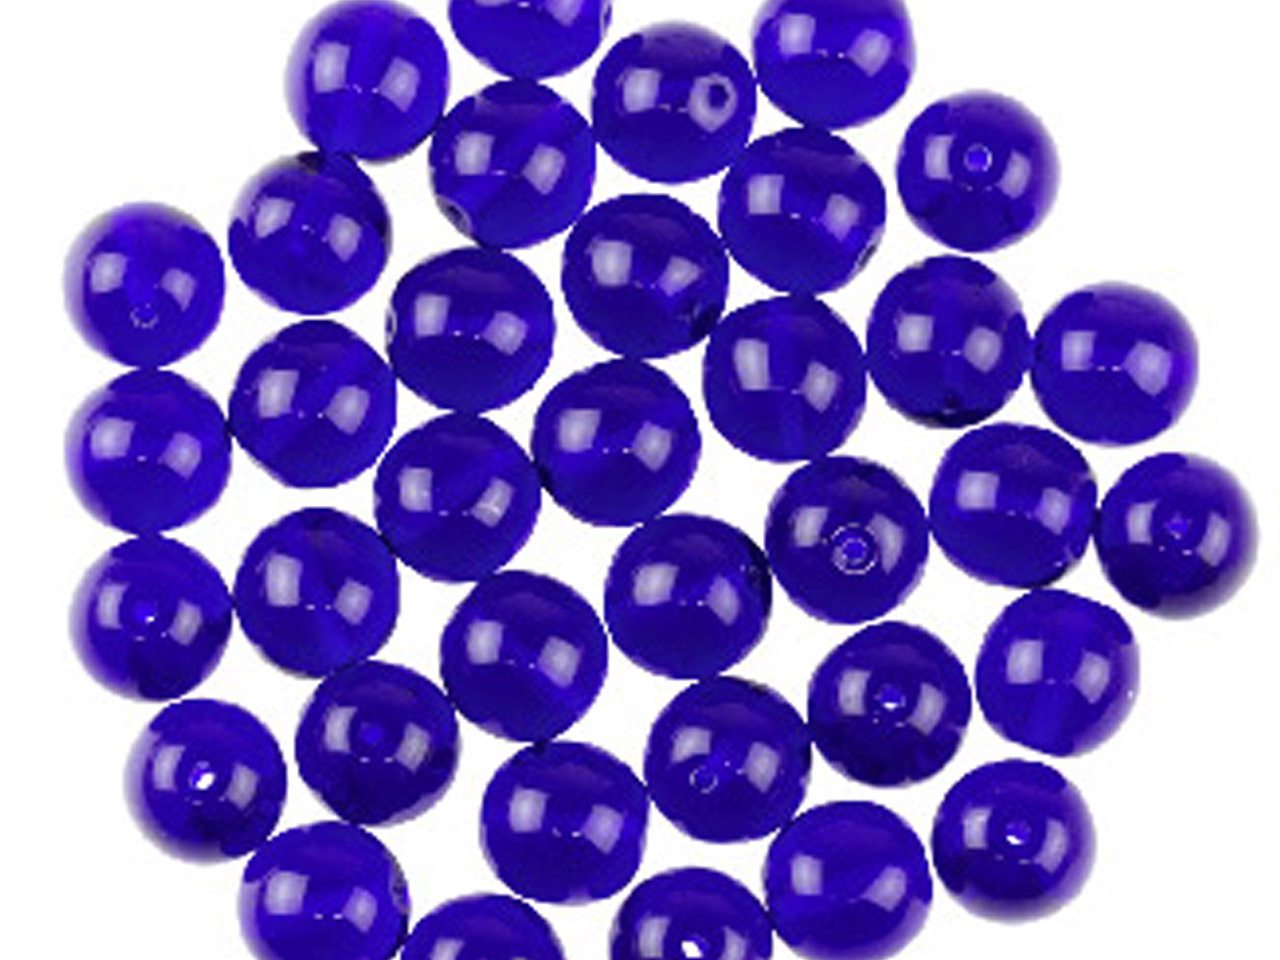 Preciosa 6mm Czech Pressed Glass   Beads Cobalt Blue, Pack of 100,